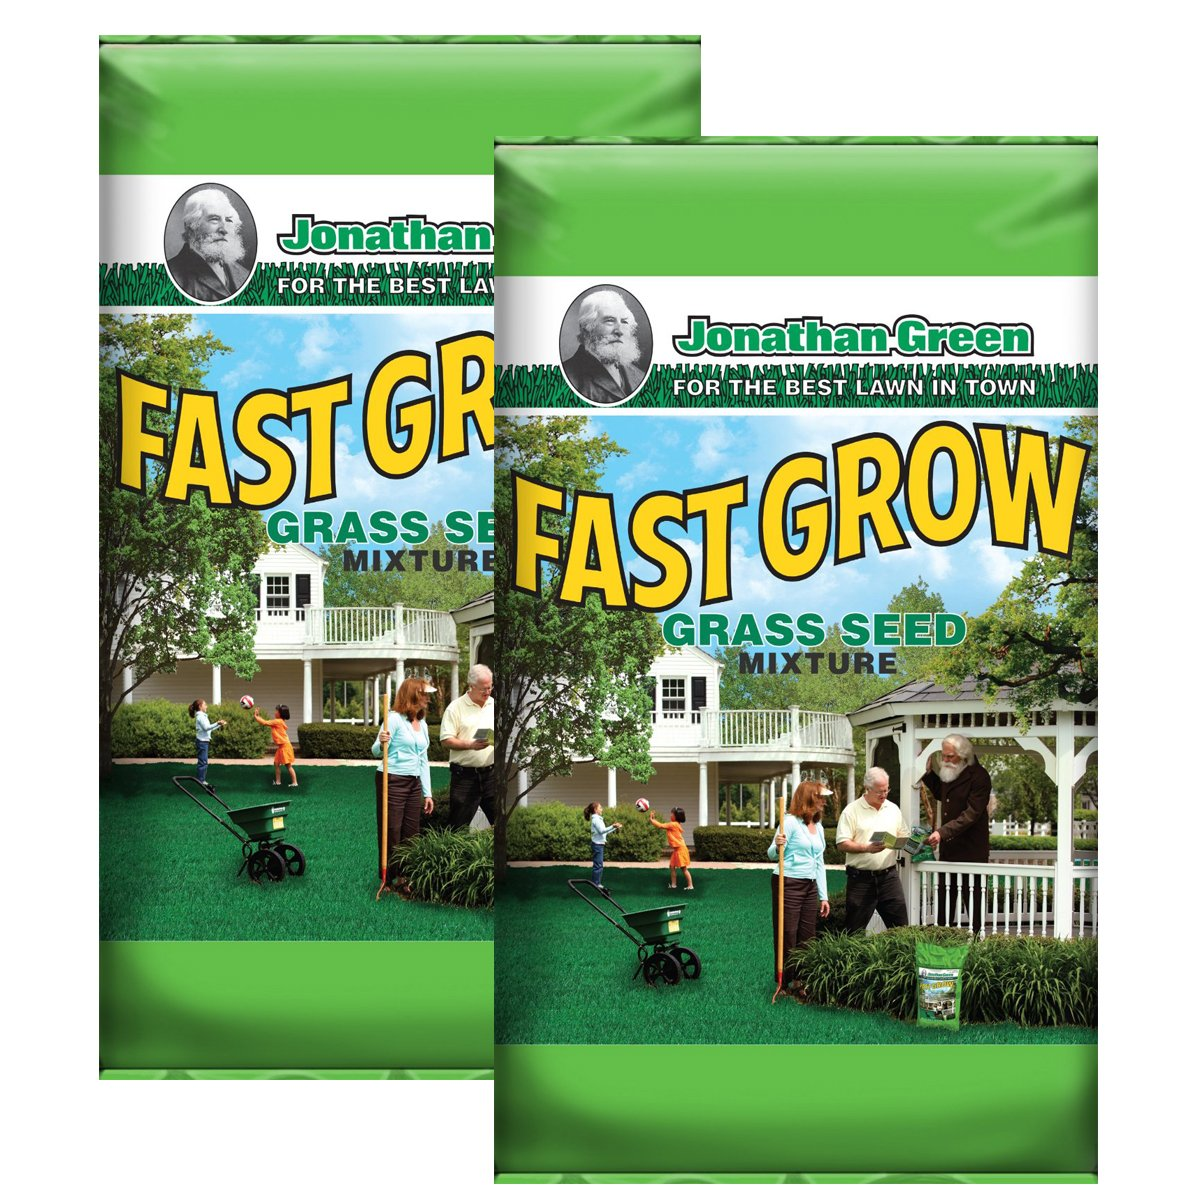 Jonathan Green 10820 Fast Grow Grass Seed Mix (2 bags of 3 Pounds)